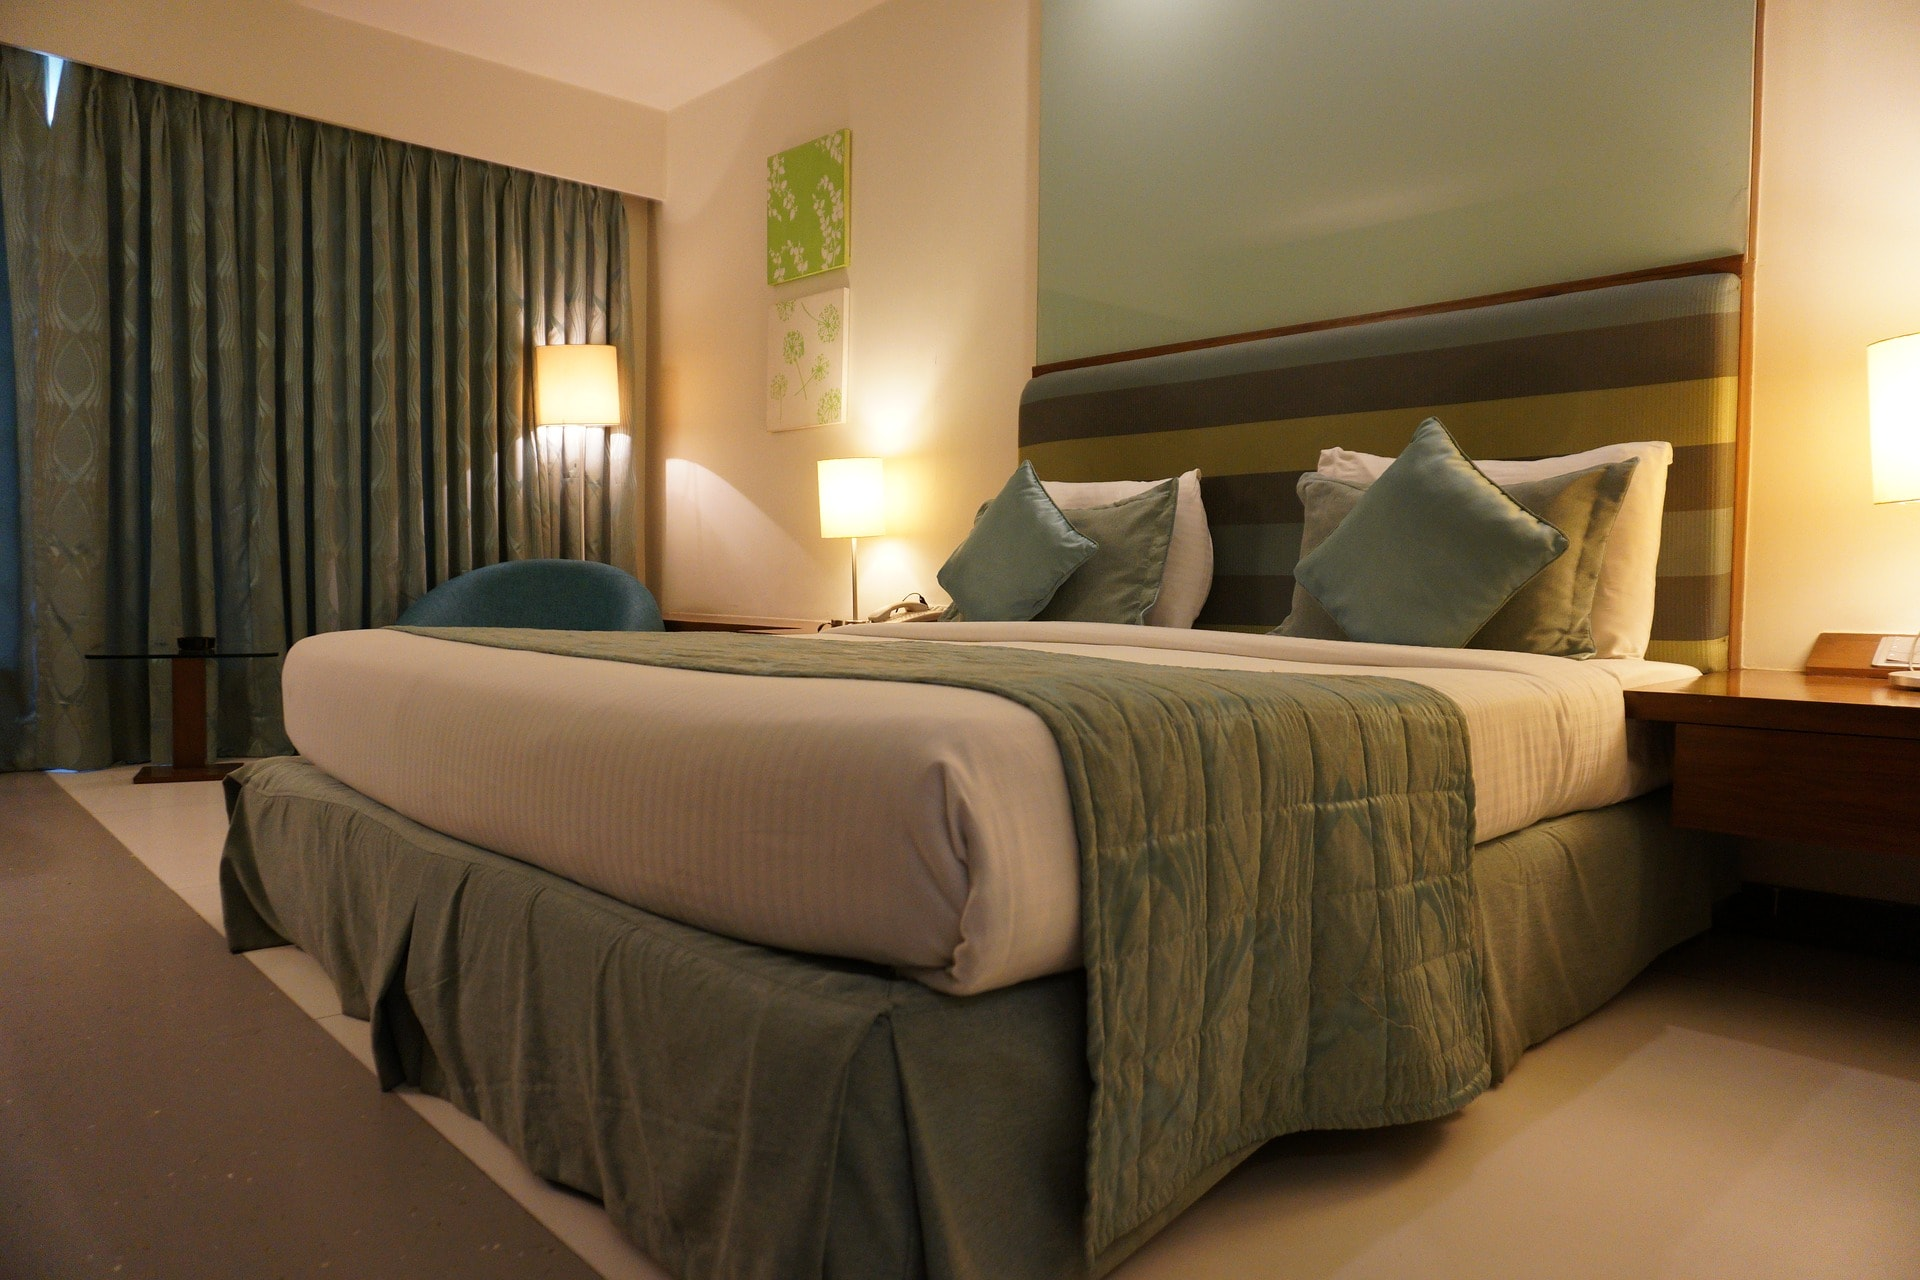 budget hotel room finding cheap accommodation